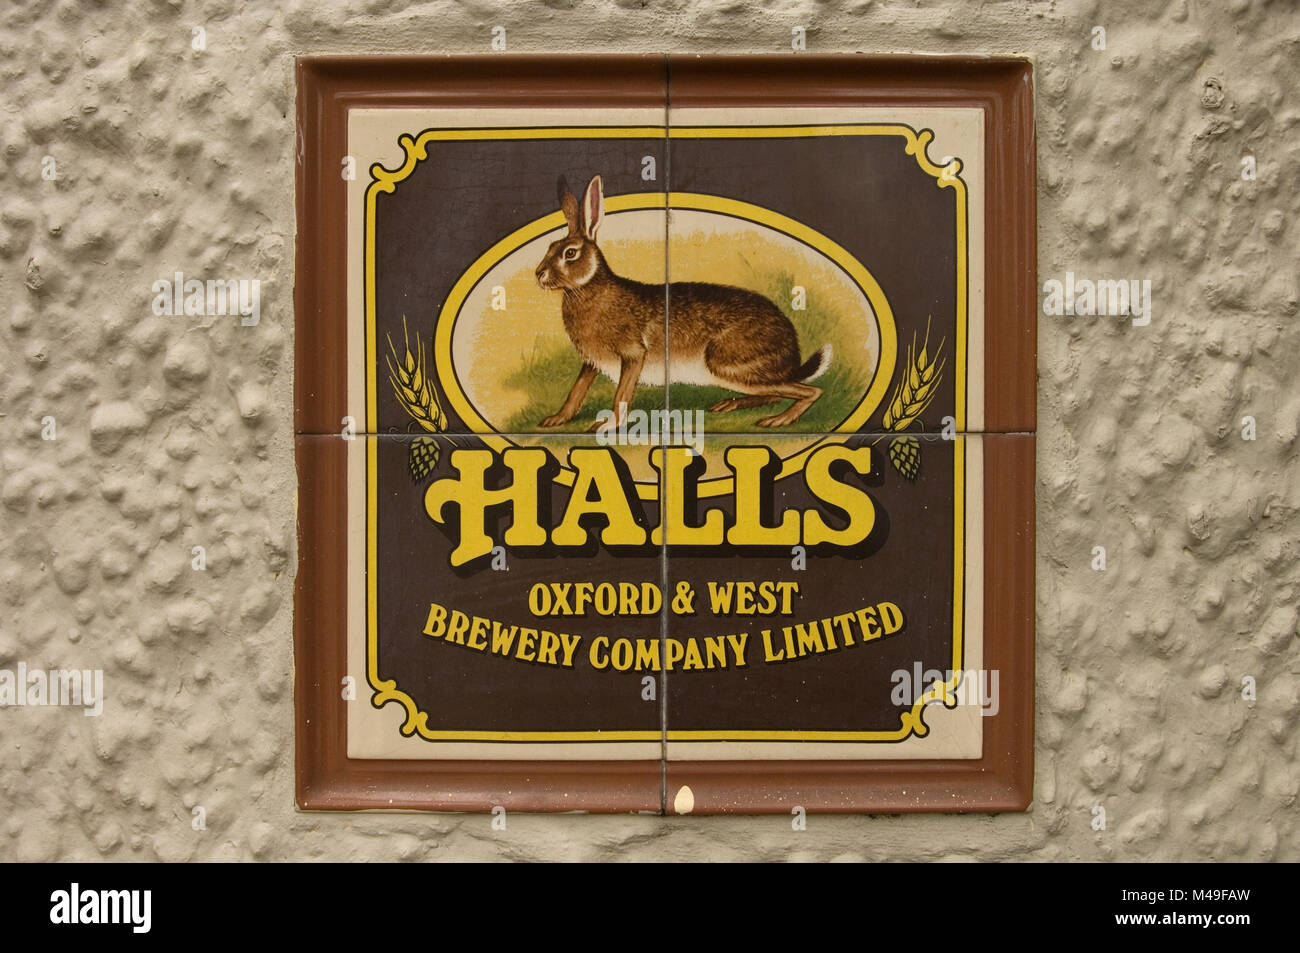 Halls Oxford and West Brewery Company Limited tiled sign on an outside wall of a pub in Oxford, England. 2007 - Stock Image